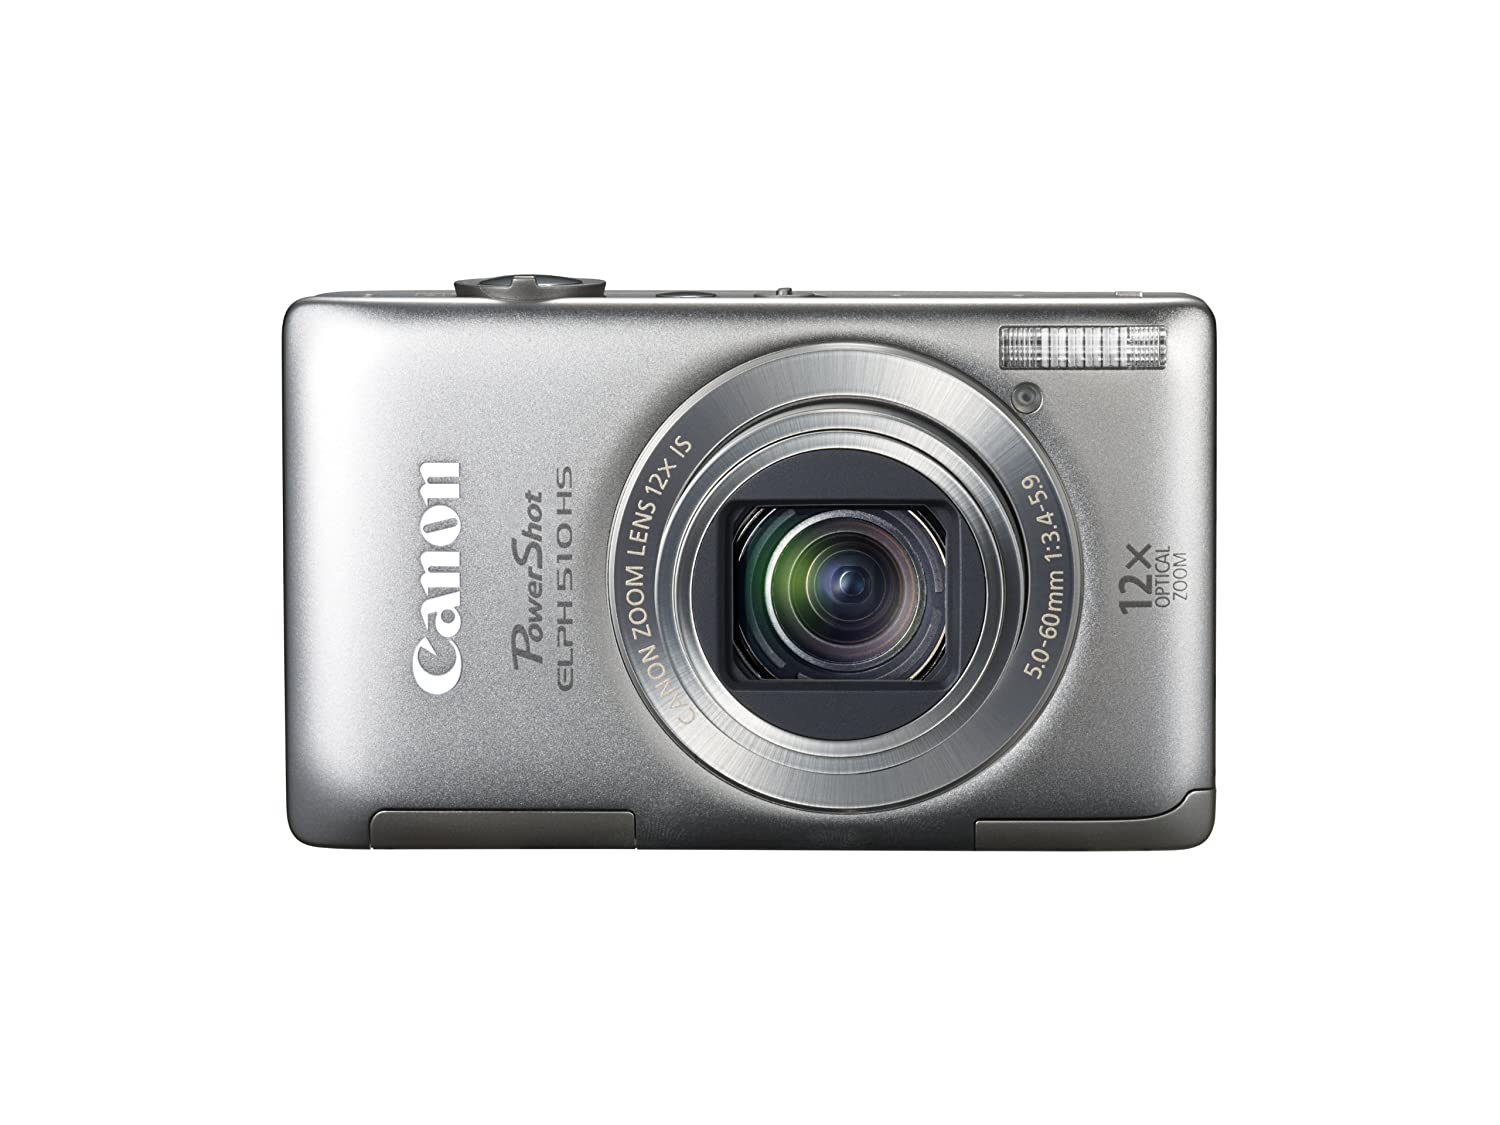 amazon com canon powershot elph 510 hs 12 1 mp cmos digital camera rh amazon com Canon ELPH 500 HS Review canon powershot a510 manual